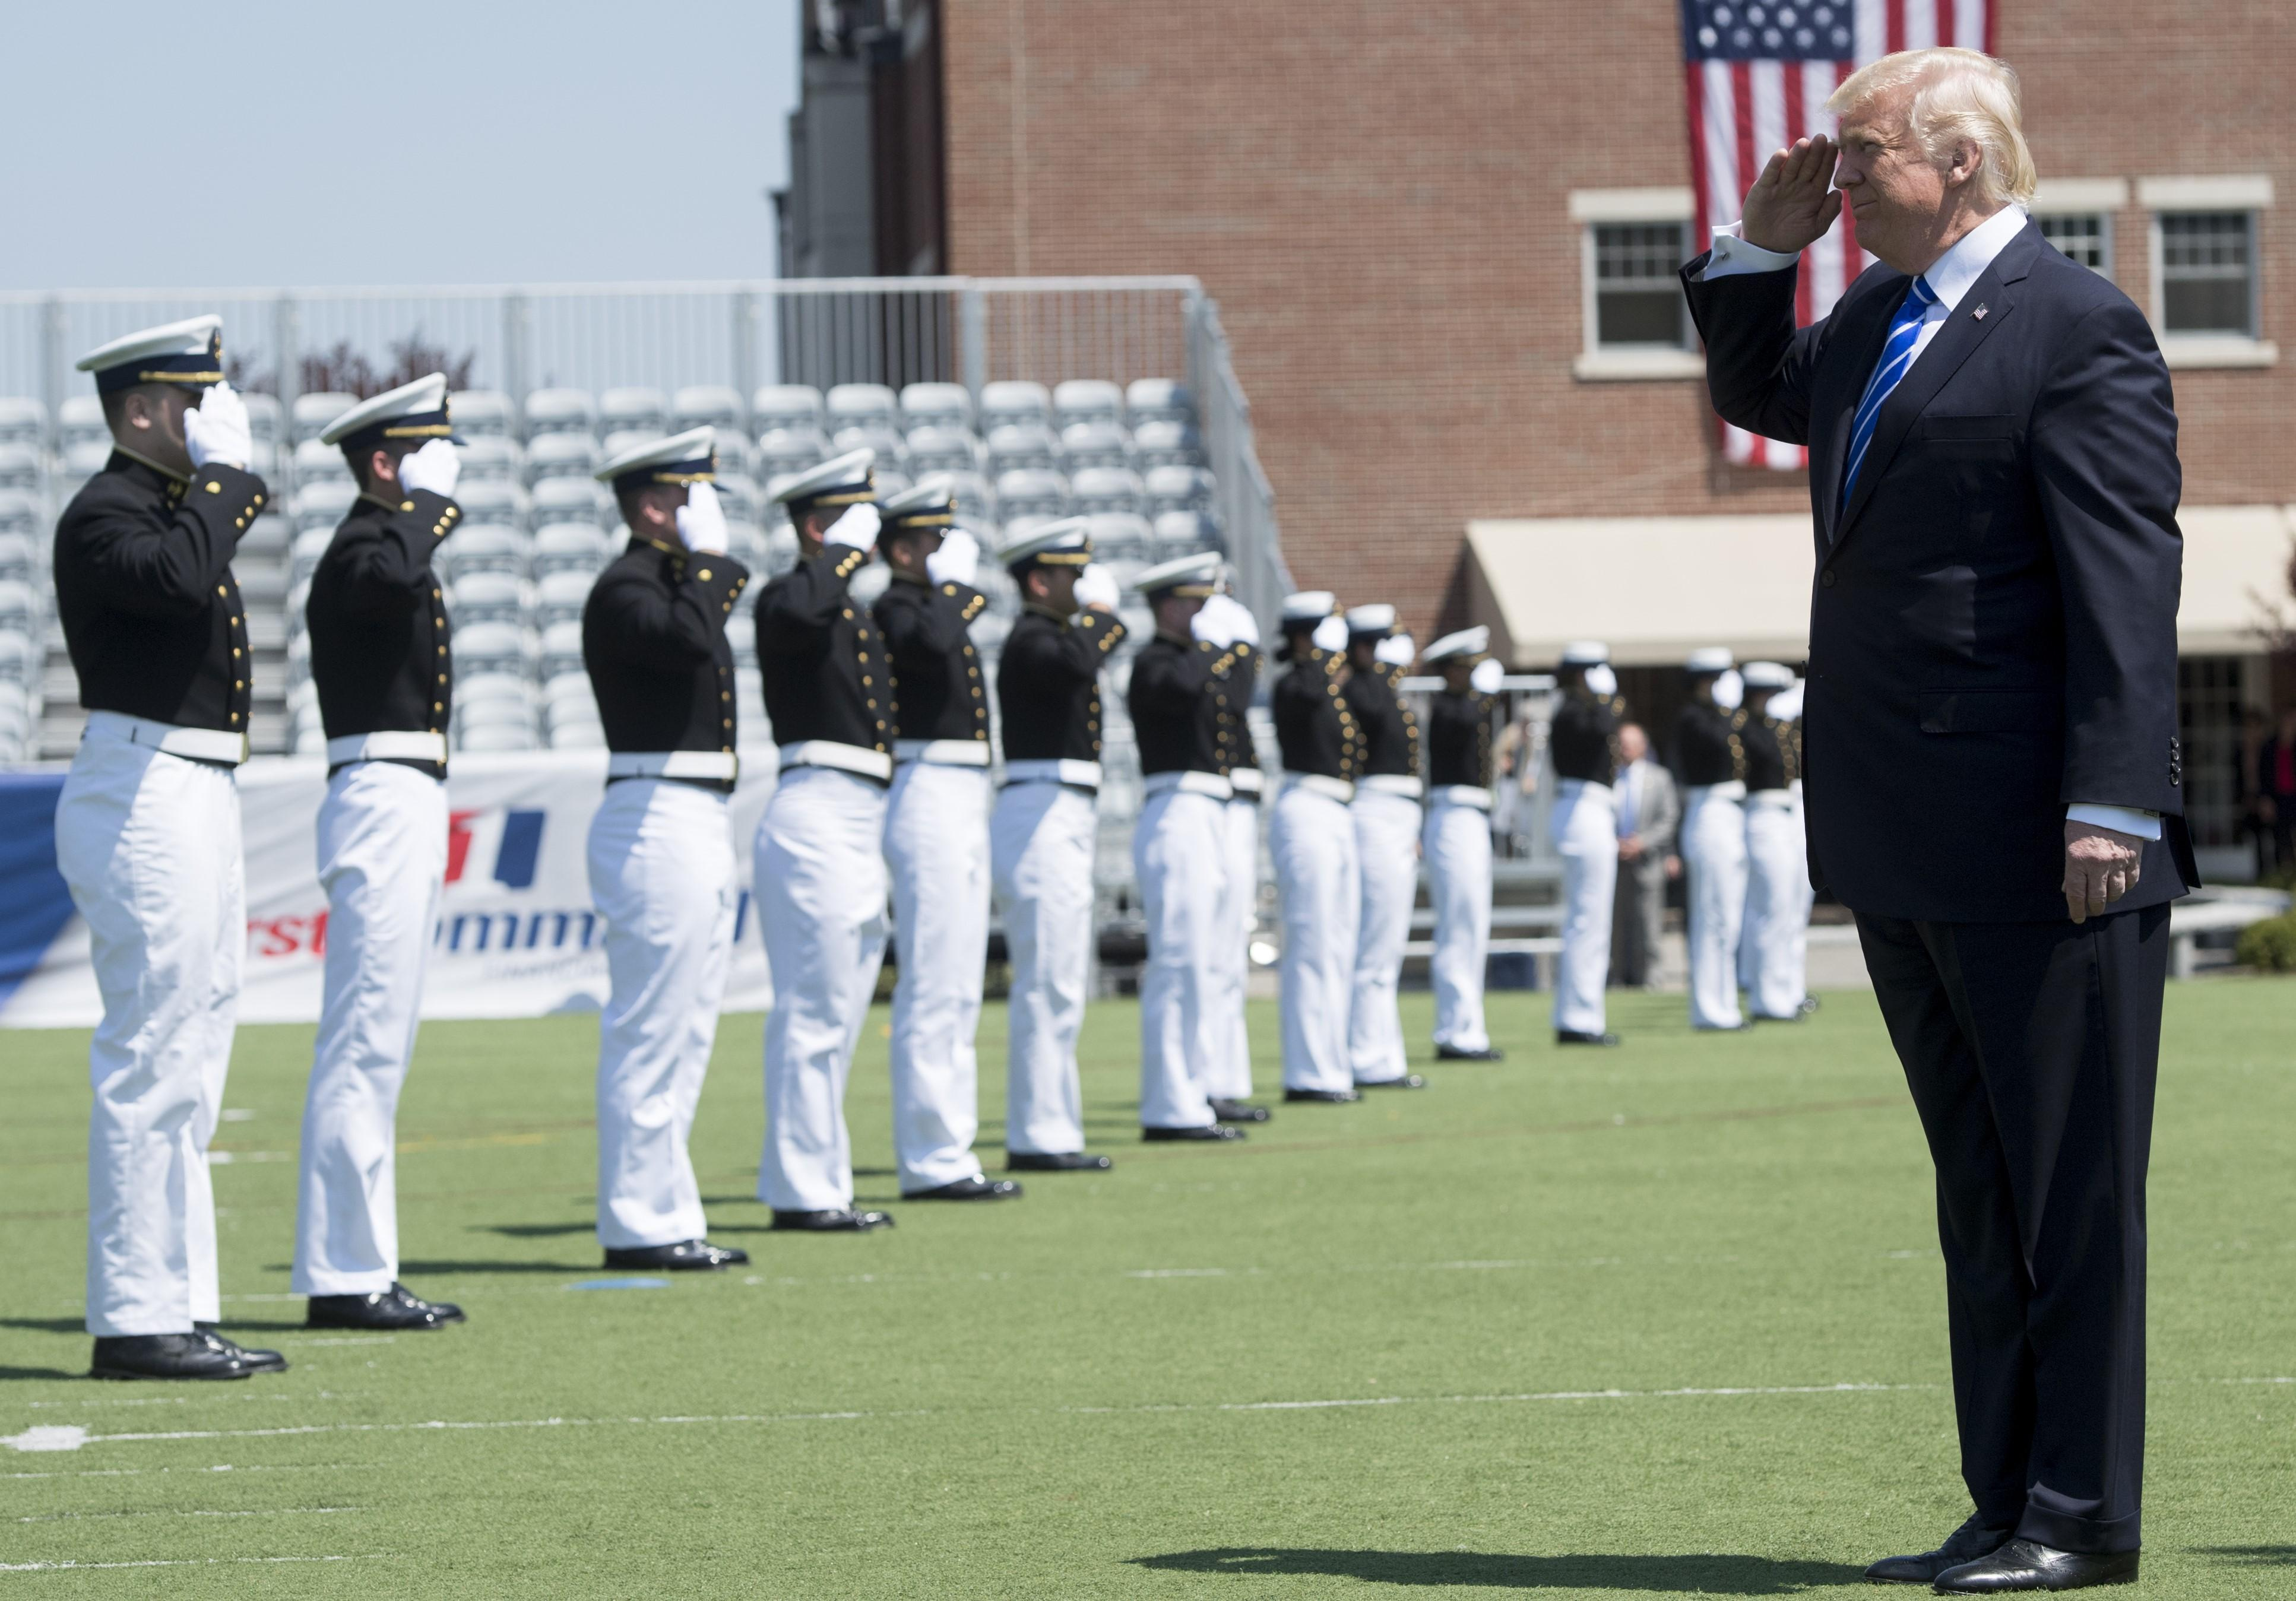 22bc4d5e897 ... President Donald Trump stepped away from Washington to deliver the  commencement address at the U. S. Coast Guard Academy in New London